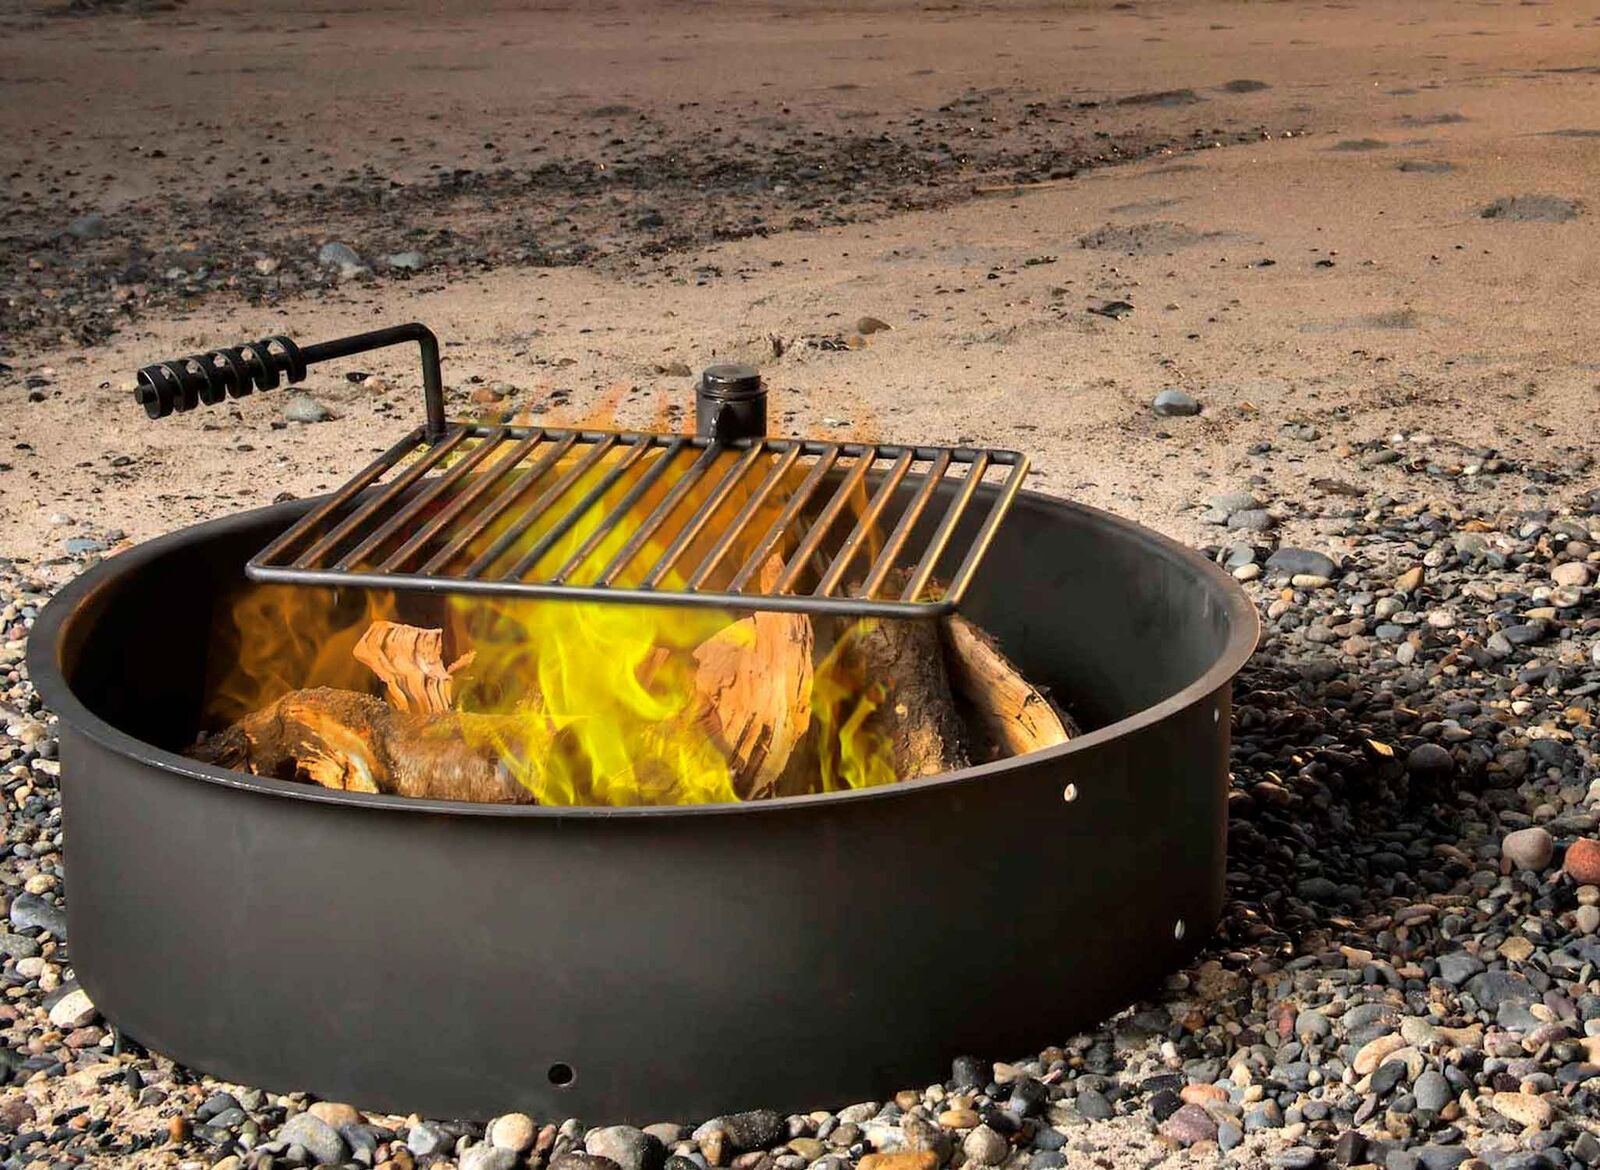 36 steel fire ring with cooking grate campfire pit park grill bbq